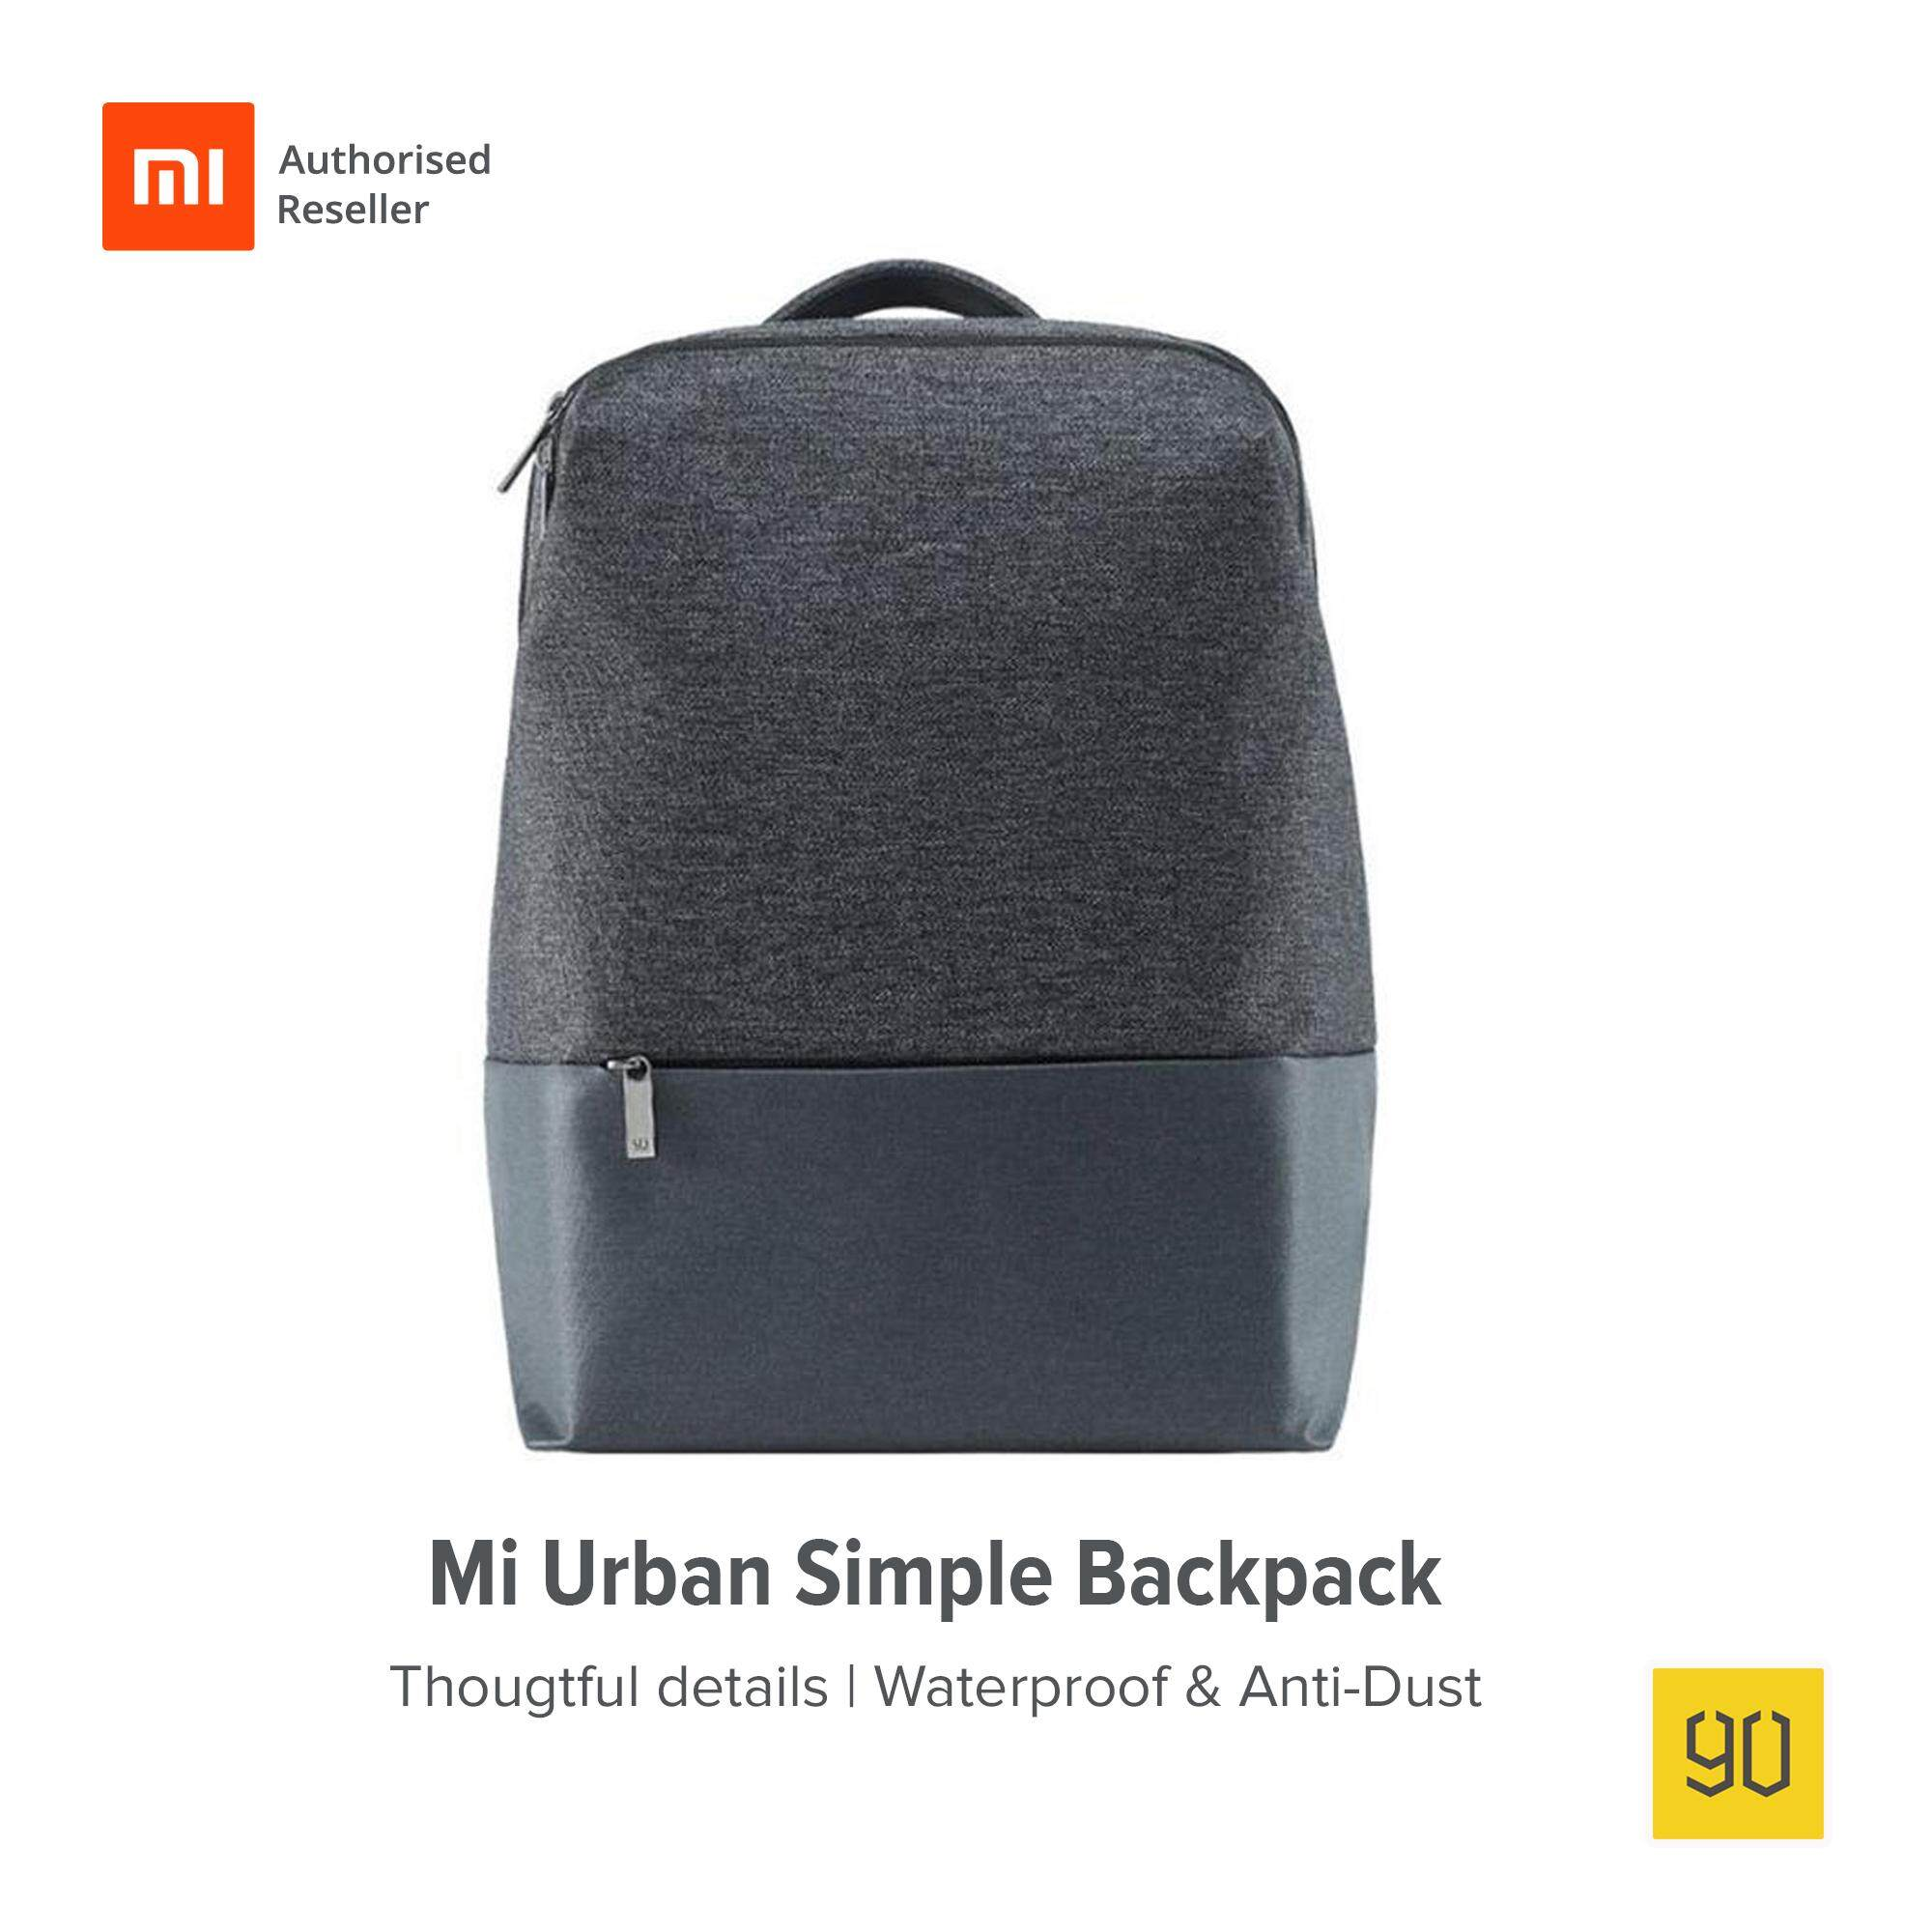 Mi Urban Simple Backpack